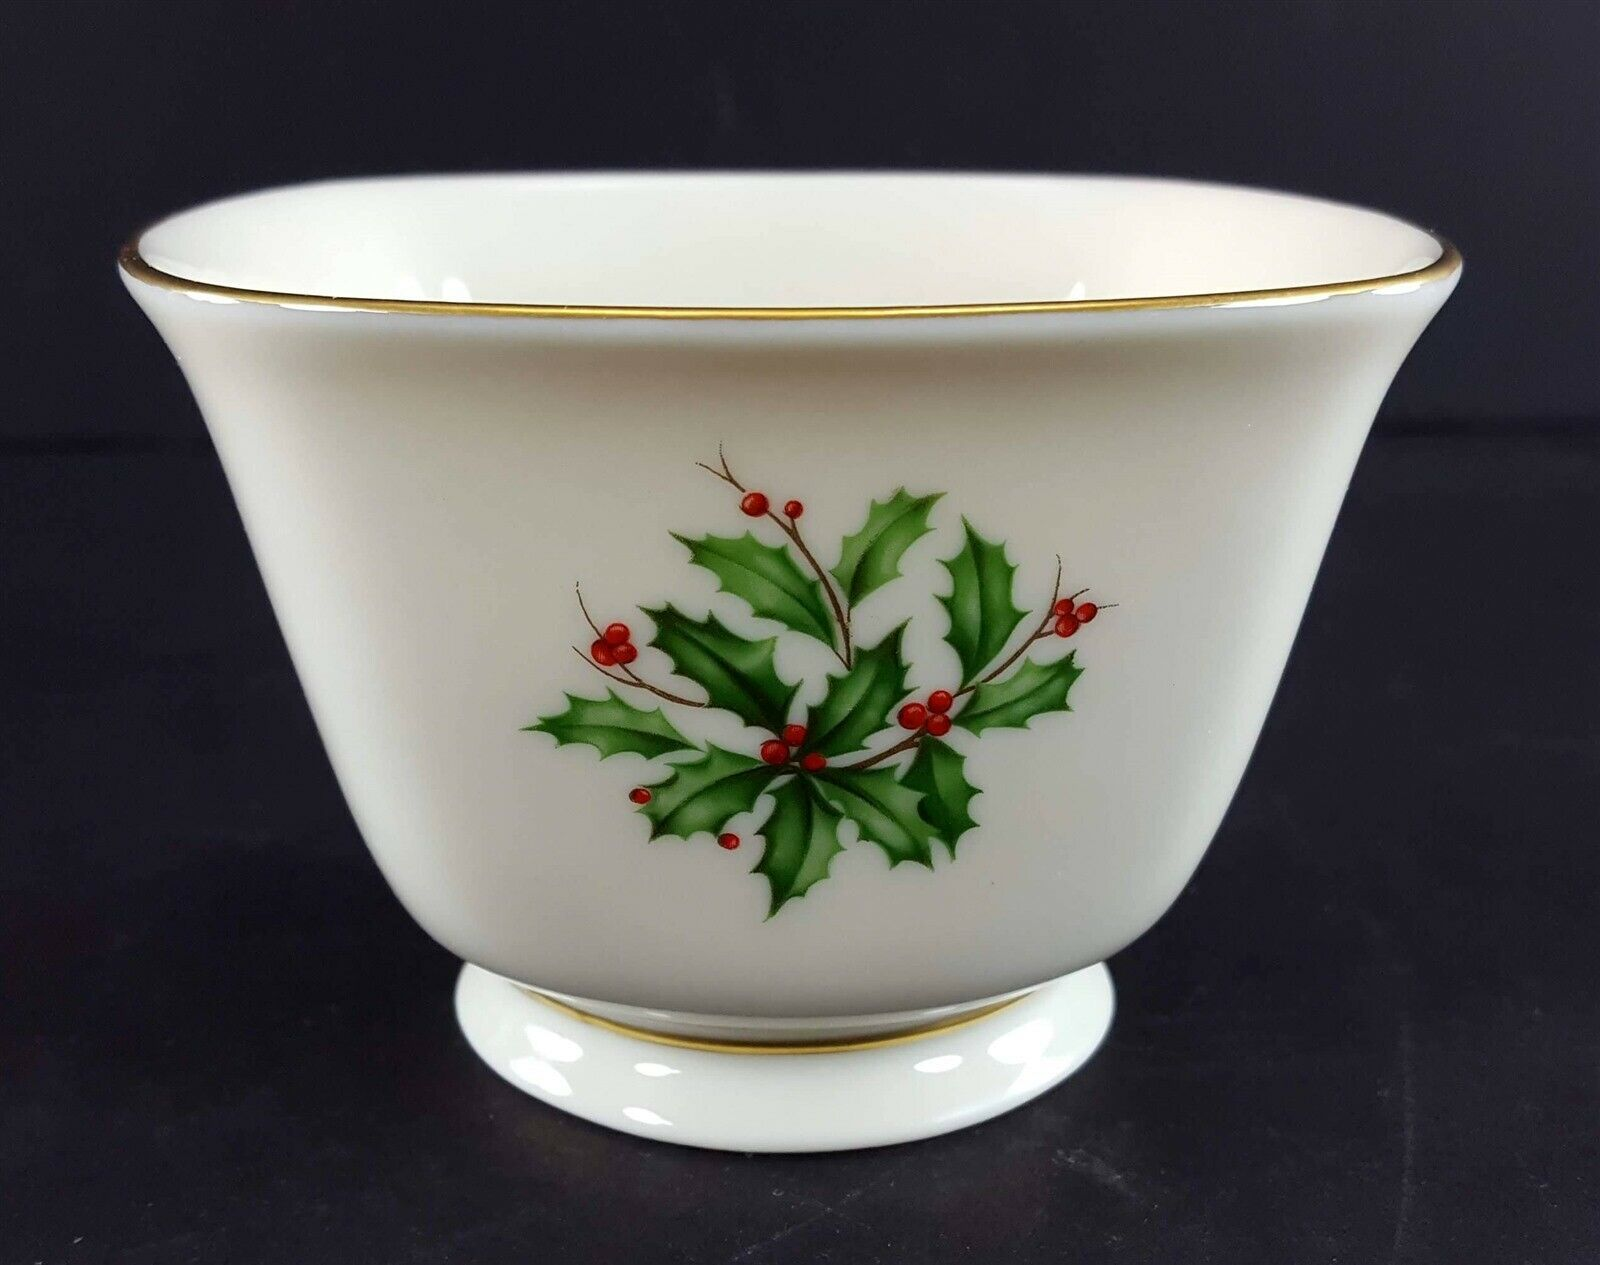 "LENOX China Holiday Dimension Treat Bowl Candy/Nuts 4-1/4"" Dinnerware"